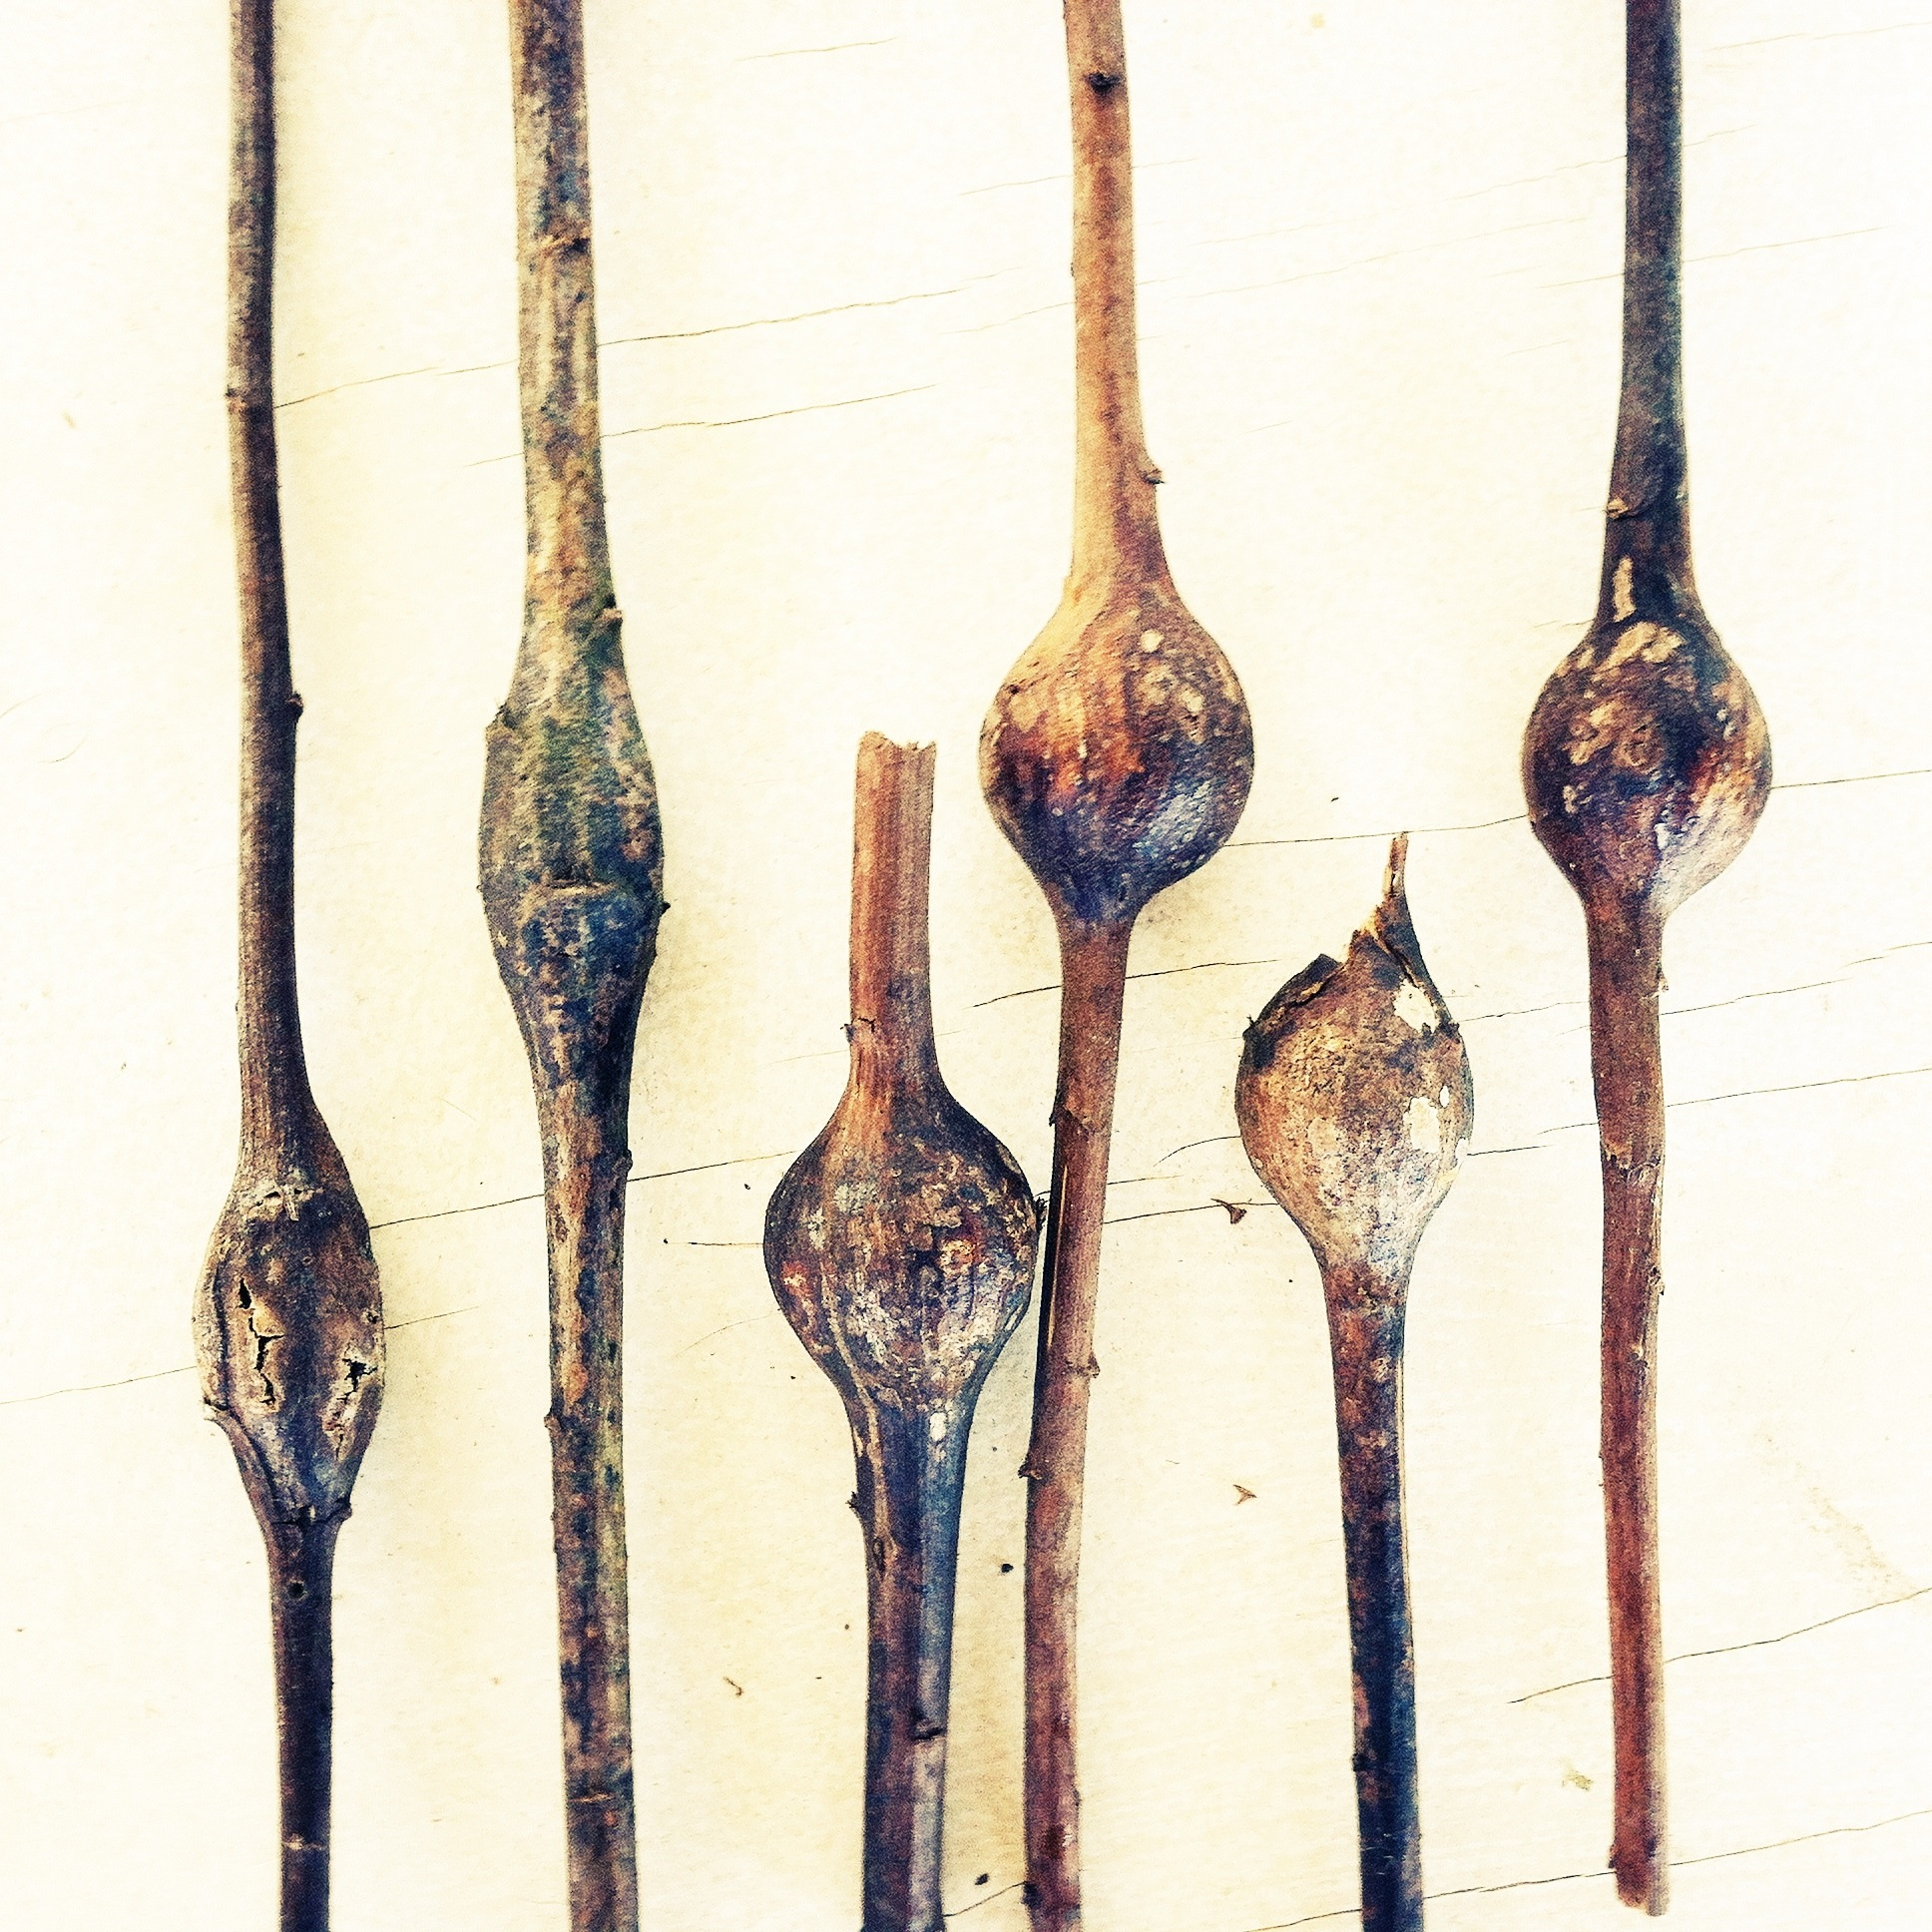 Left to Right: two elliptical goldenrod moth galls; four spherical goldenrod fly galls.